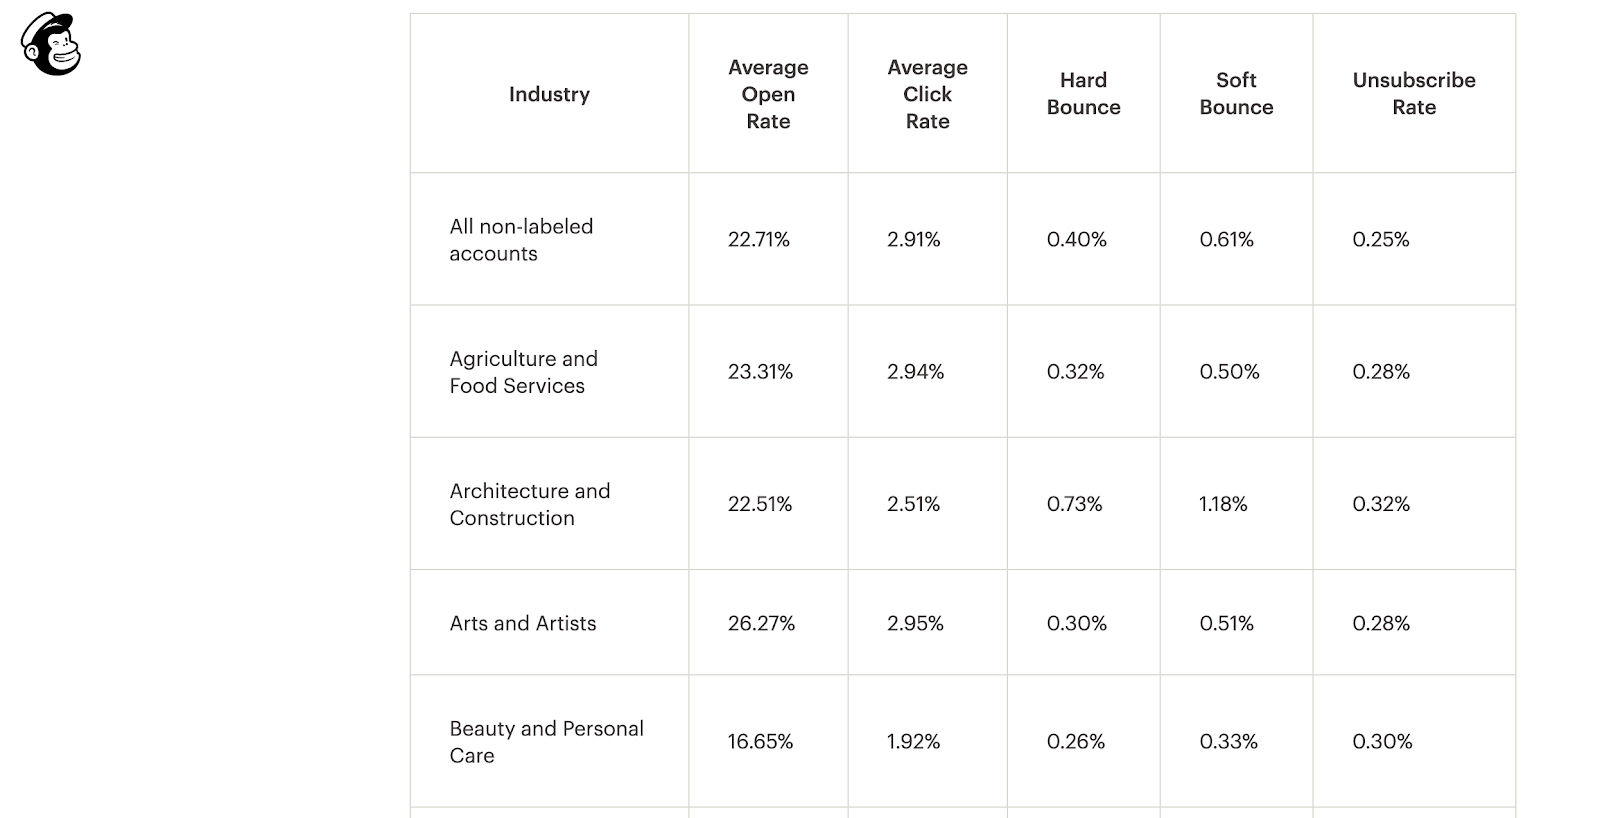 Email open rate: image mailchimp chart average industries open rate